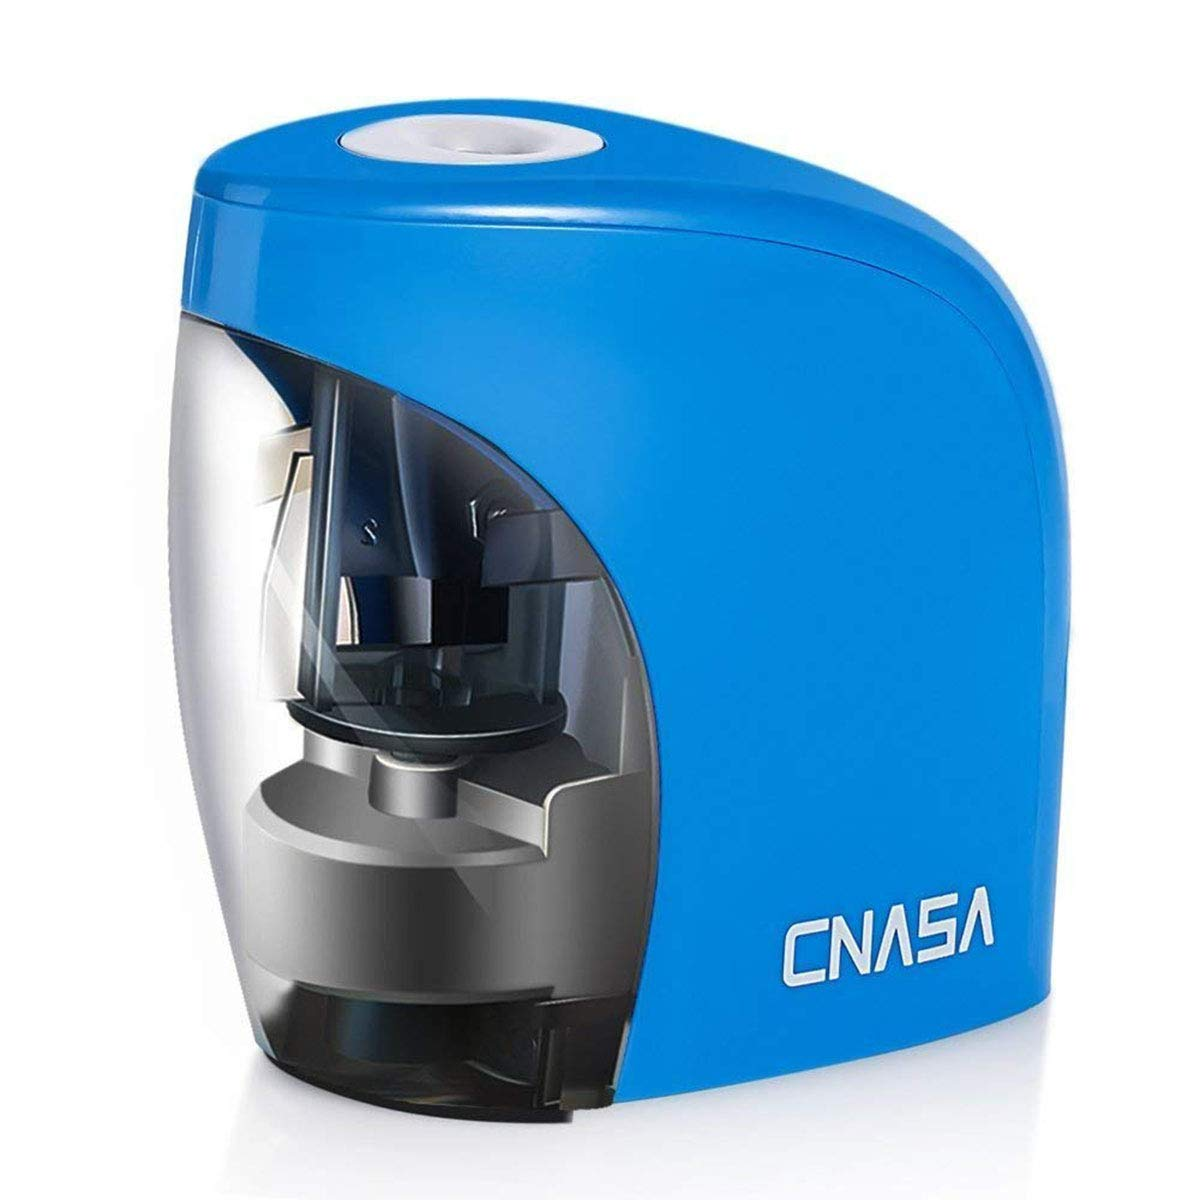 CNASA Electric Pencil Sharpener, Auto Pencil Sharpener with Battery Operated, Small and Durable, Kid Friendly (Blue)